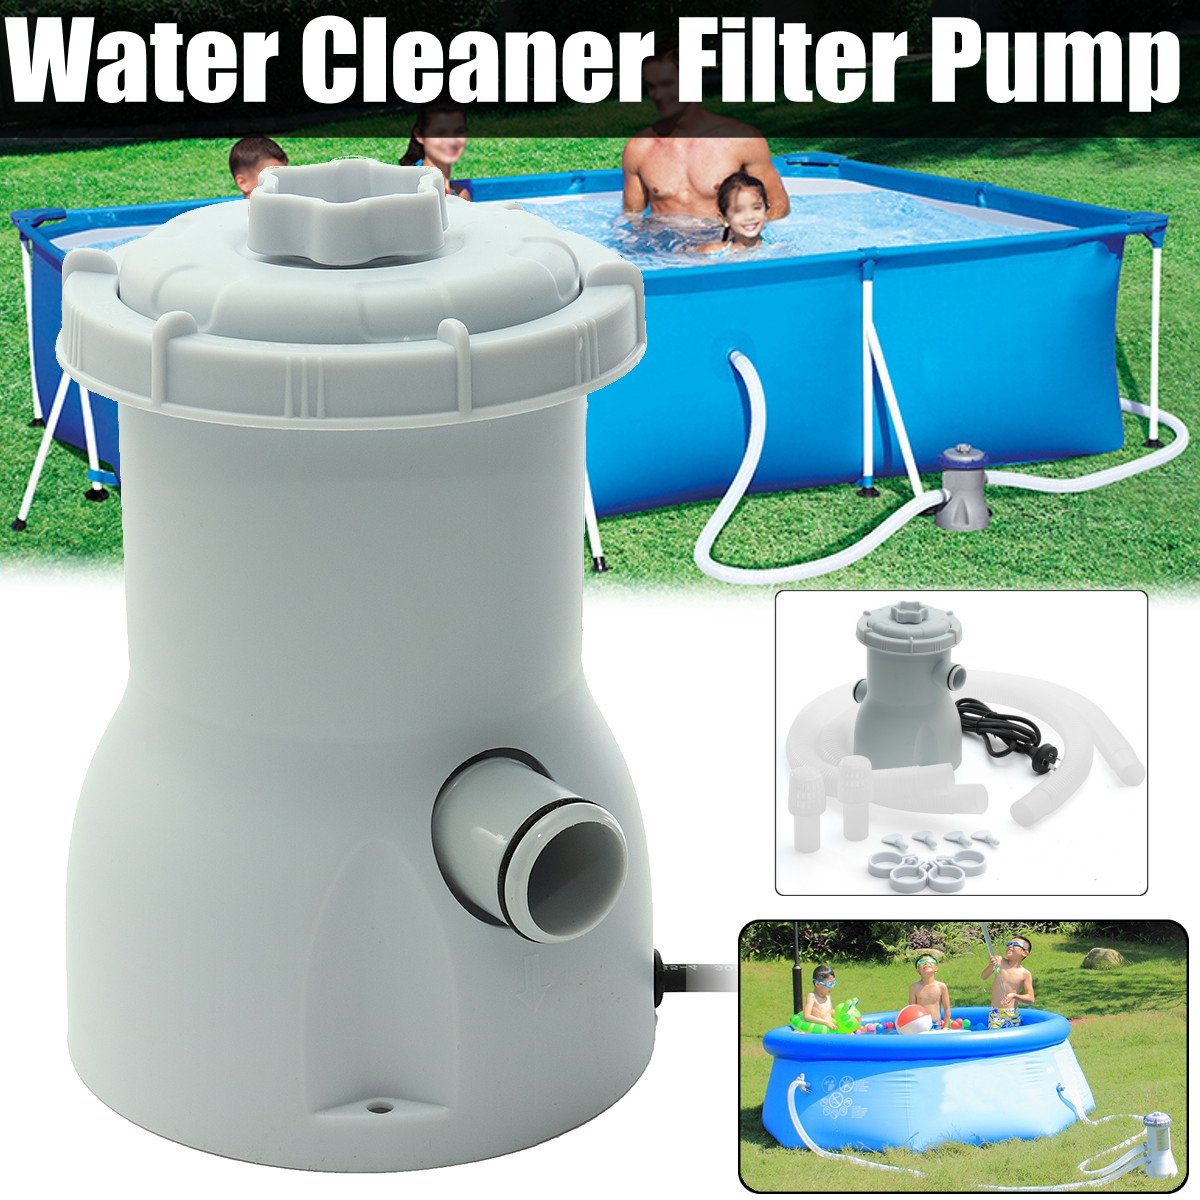 220V Electric Filter Pump Swimming Pool Filter Pump Water Clean Clear Dirty Pool Pond Pumps Filter/swimming Pool Water Cleaner 58427 bestwat aqua powercell vac cleaner for spas and ag p totally submersible body vacuum debris on pool spa floor clean water